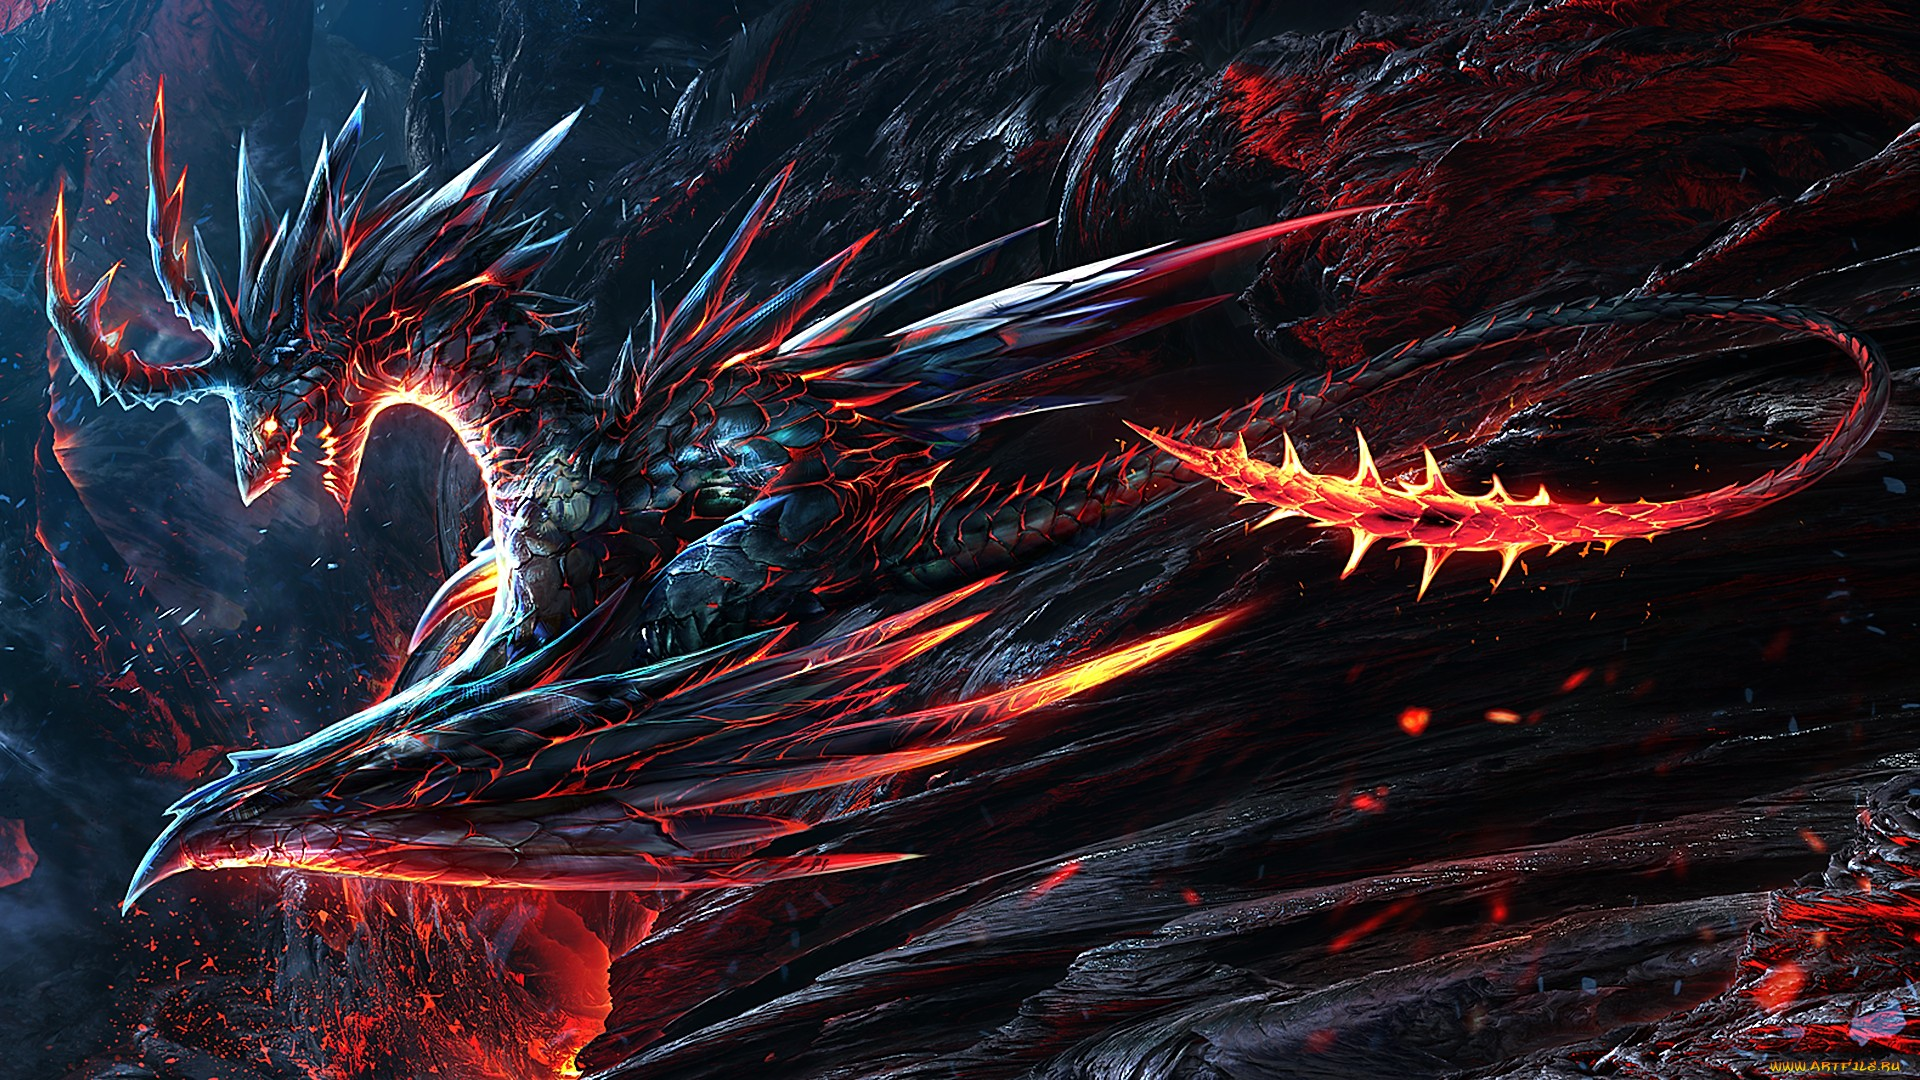 Molten scales hd wallpaper background image 1920x1080 - Dragon backgrounds 1920x1080 ...